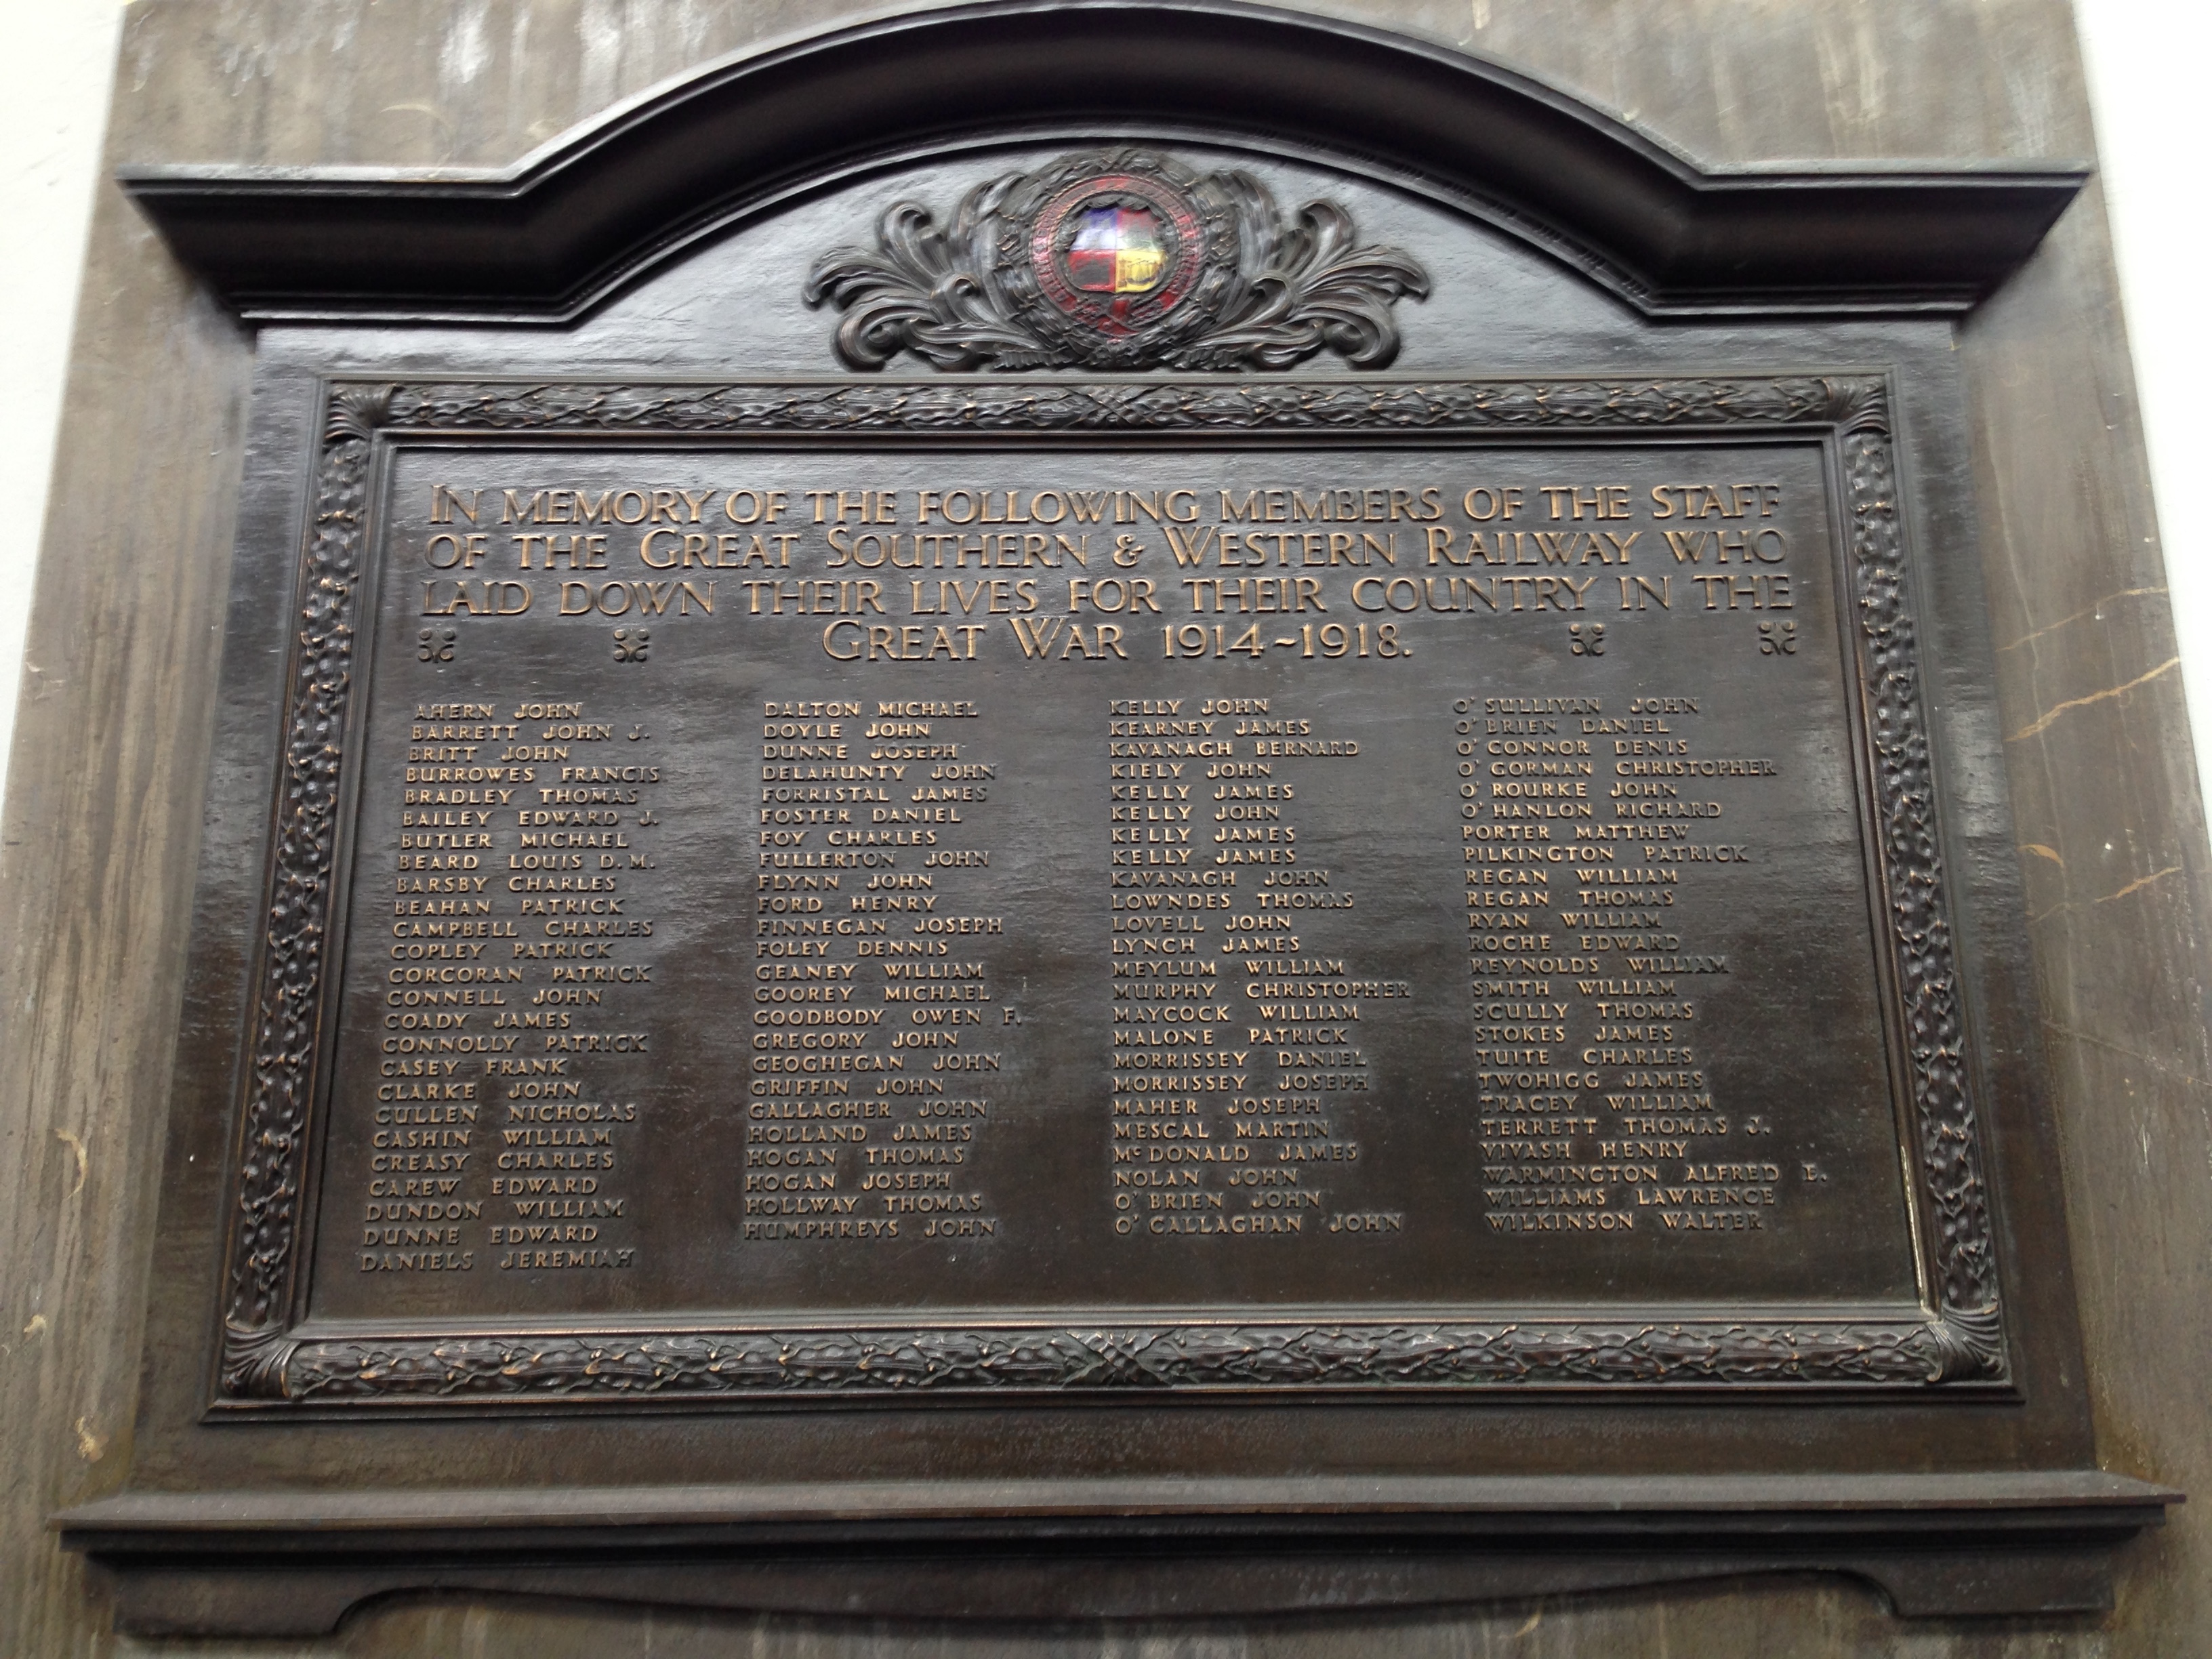 WWI plaque, Heuston Station